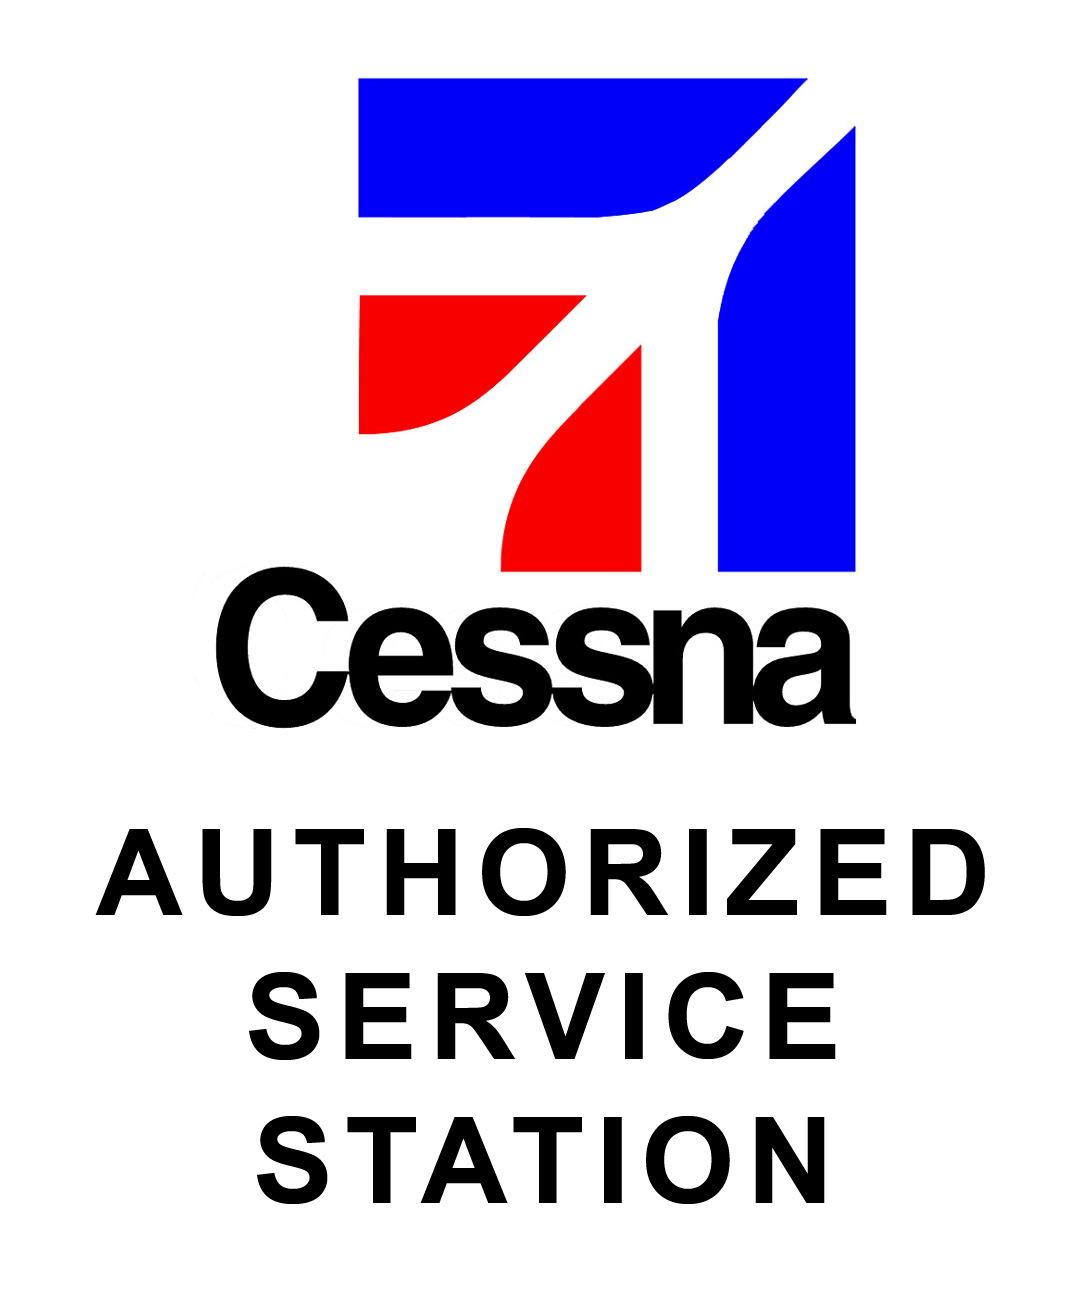 Cessna Authorized Service Station